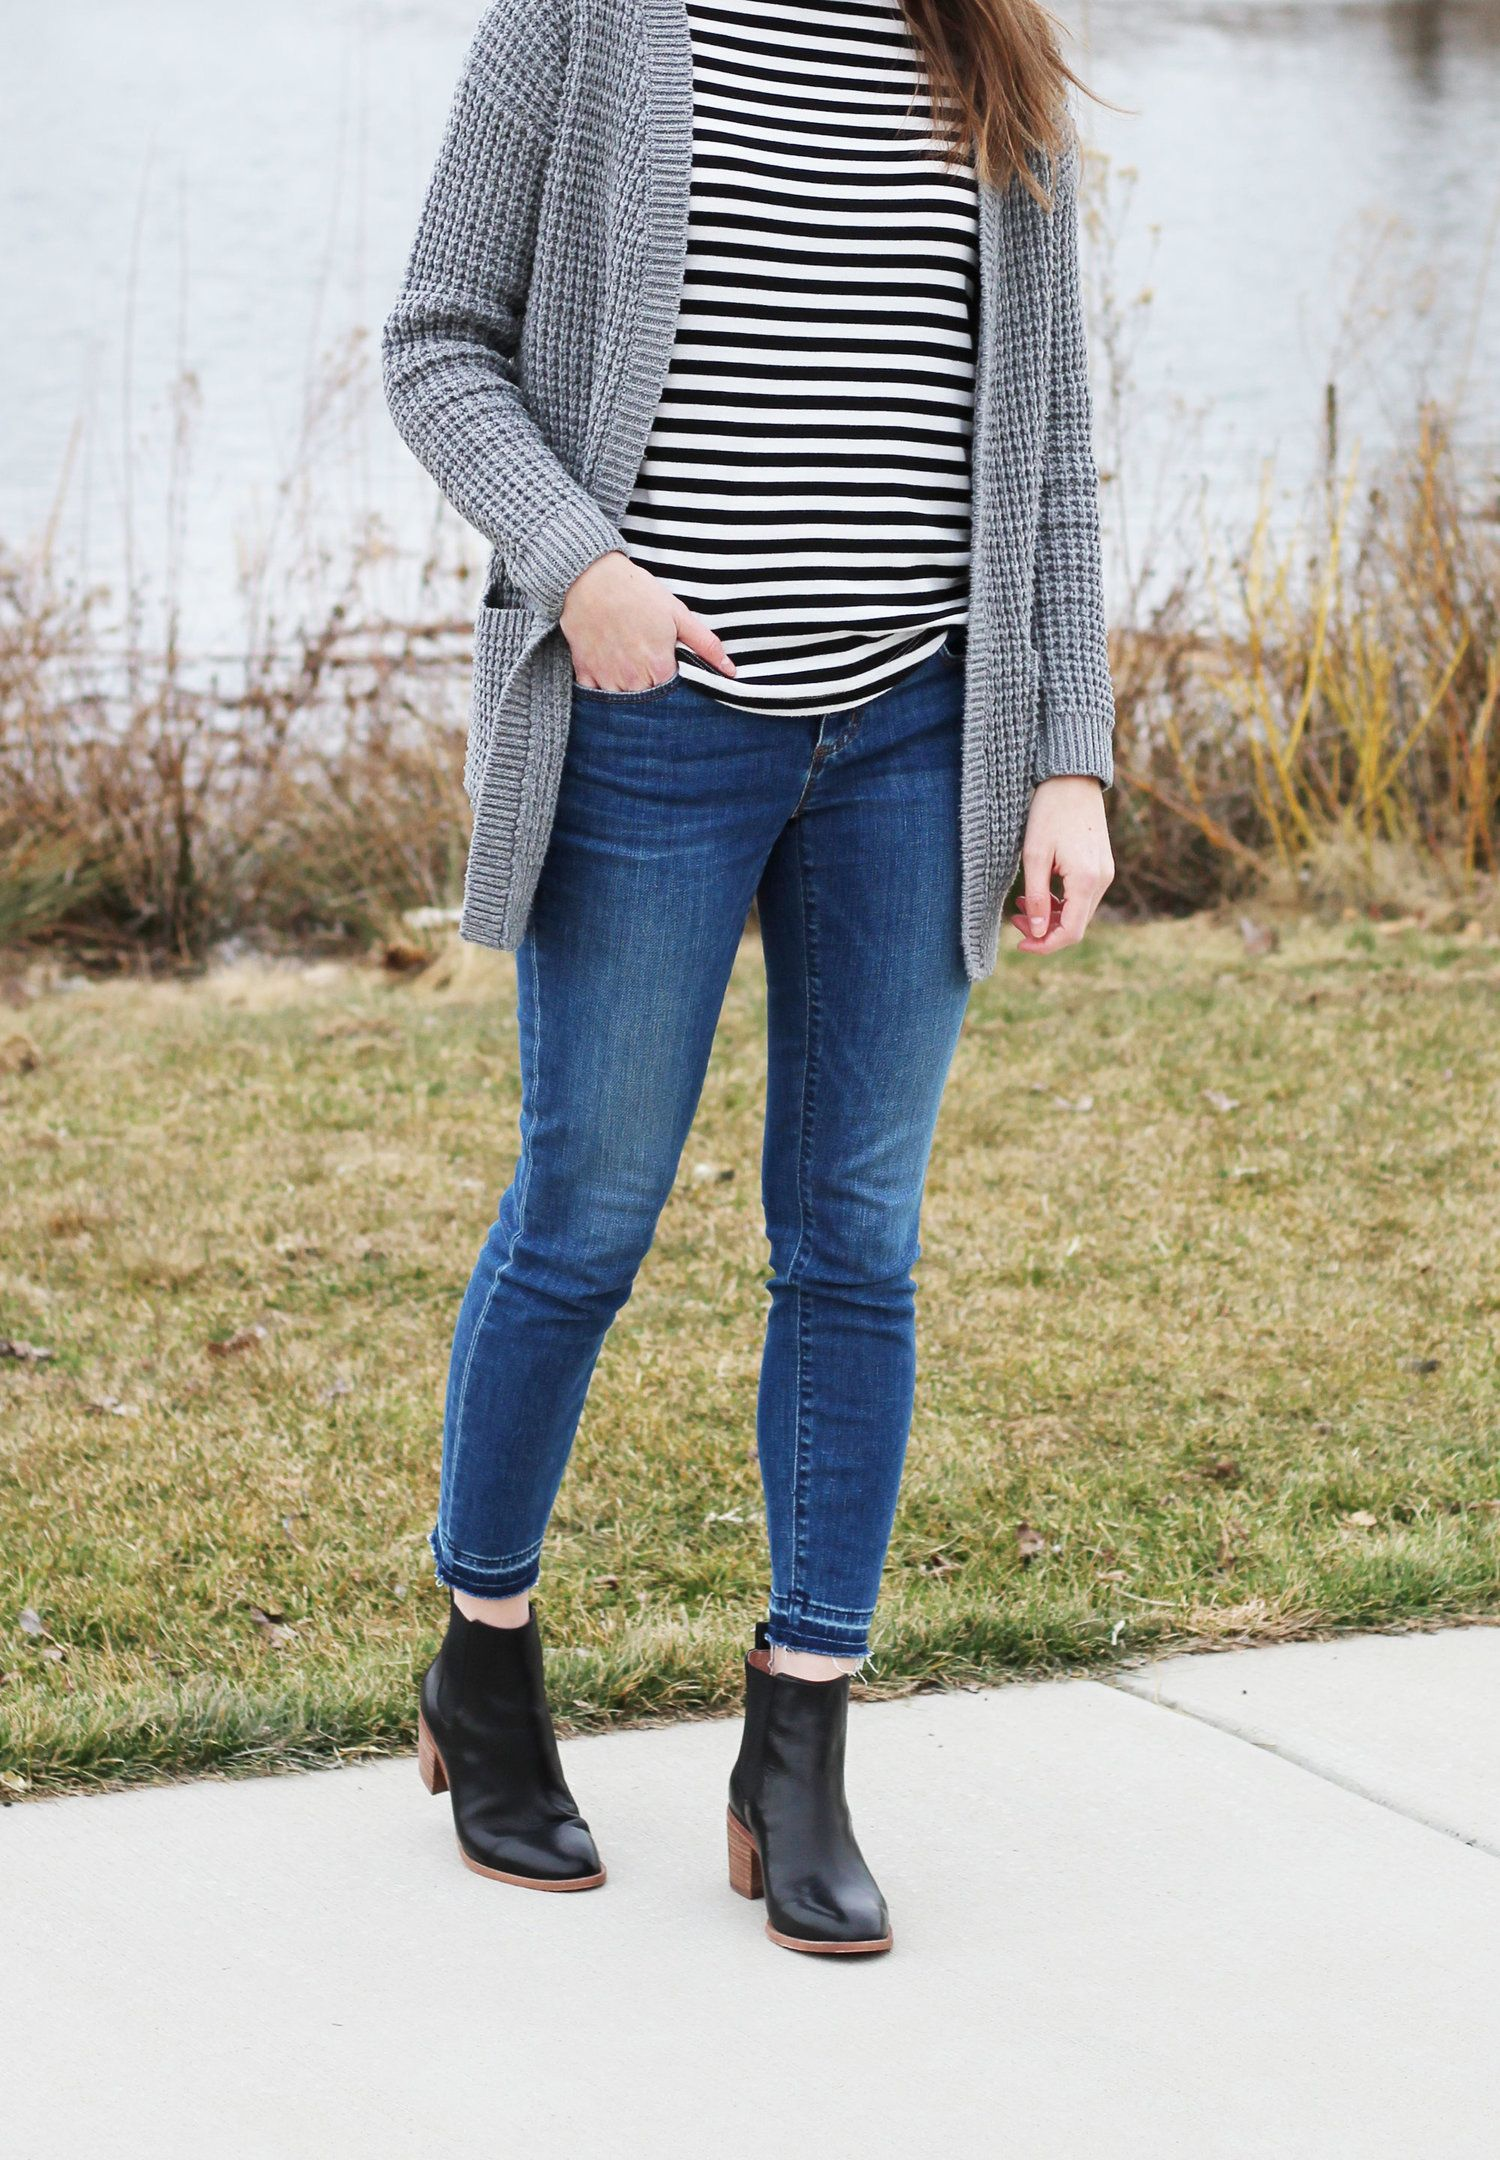 Madewell Frankie chelsea boots outfit with grey cardigan and stripes c4e383b01